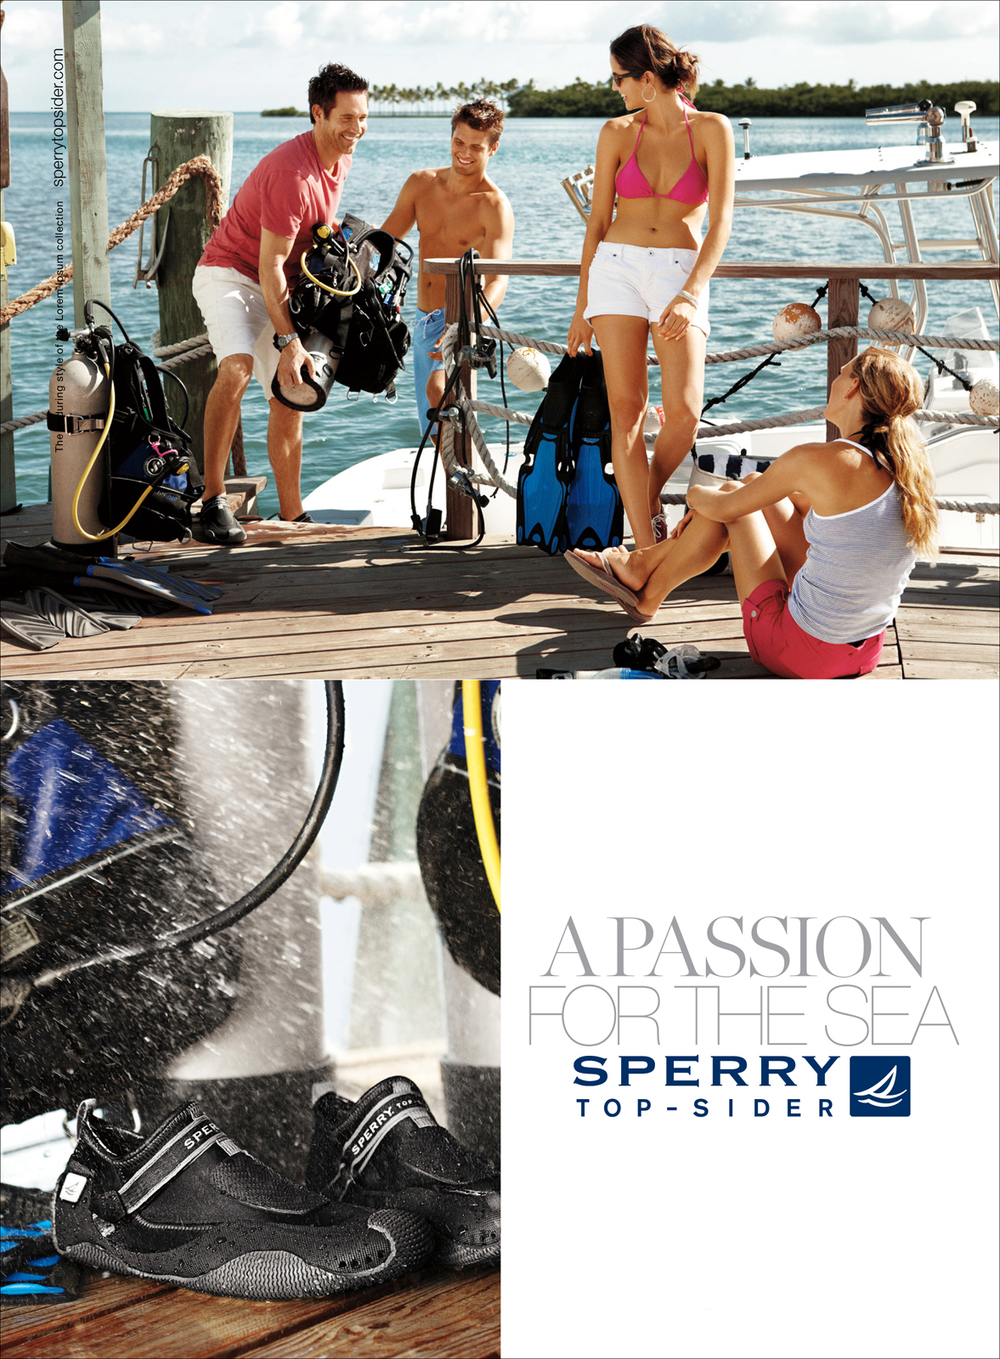 SC_ADVERTISING_SPERRY_KEYS_SS_2010_13.jpg